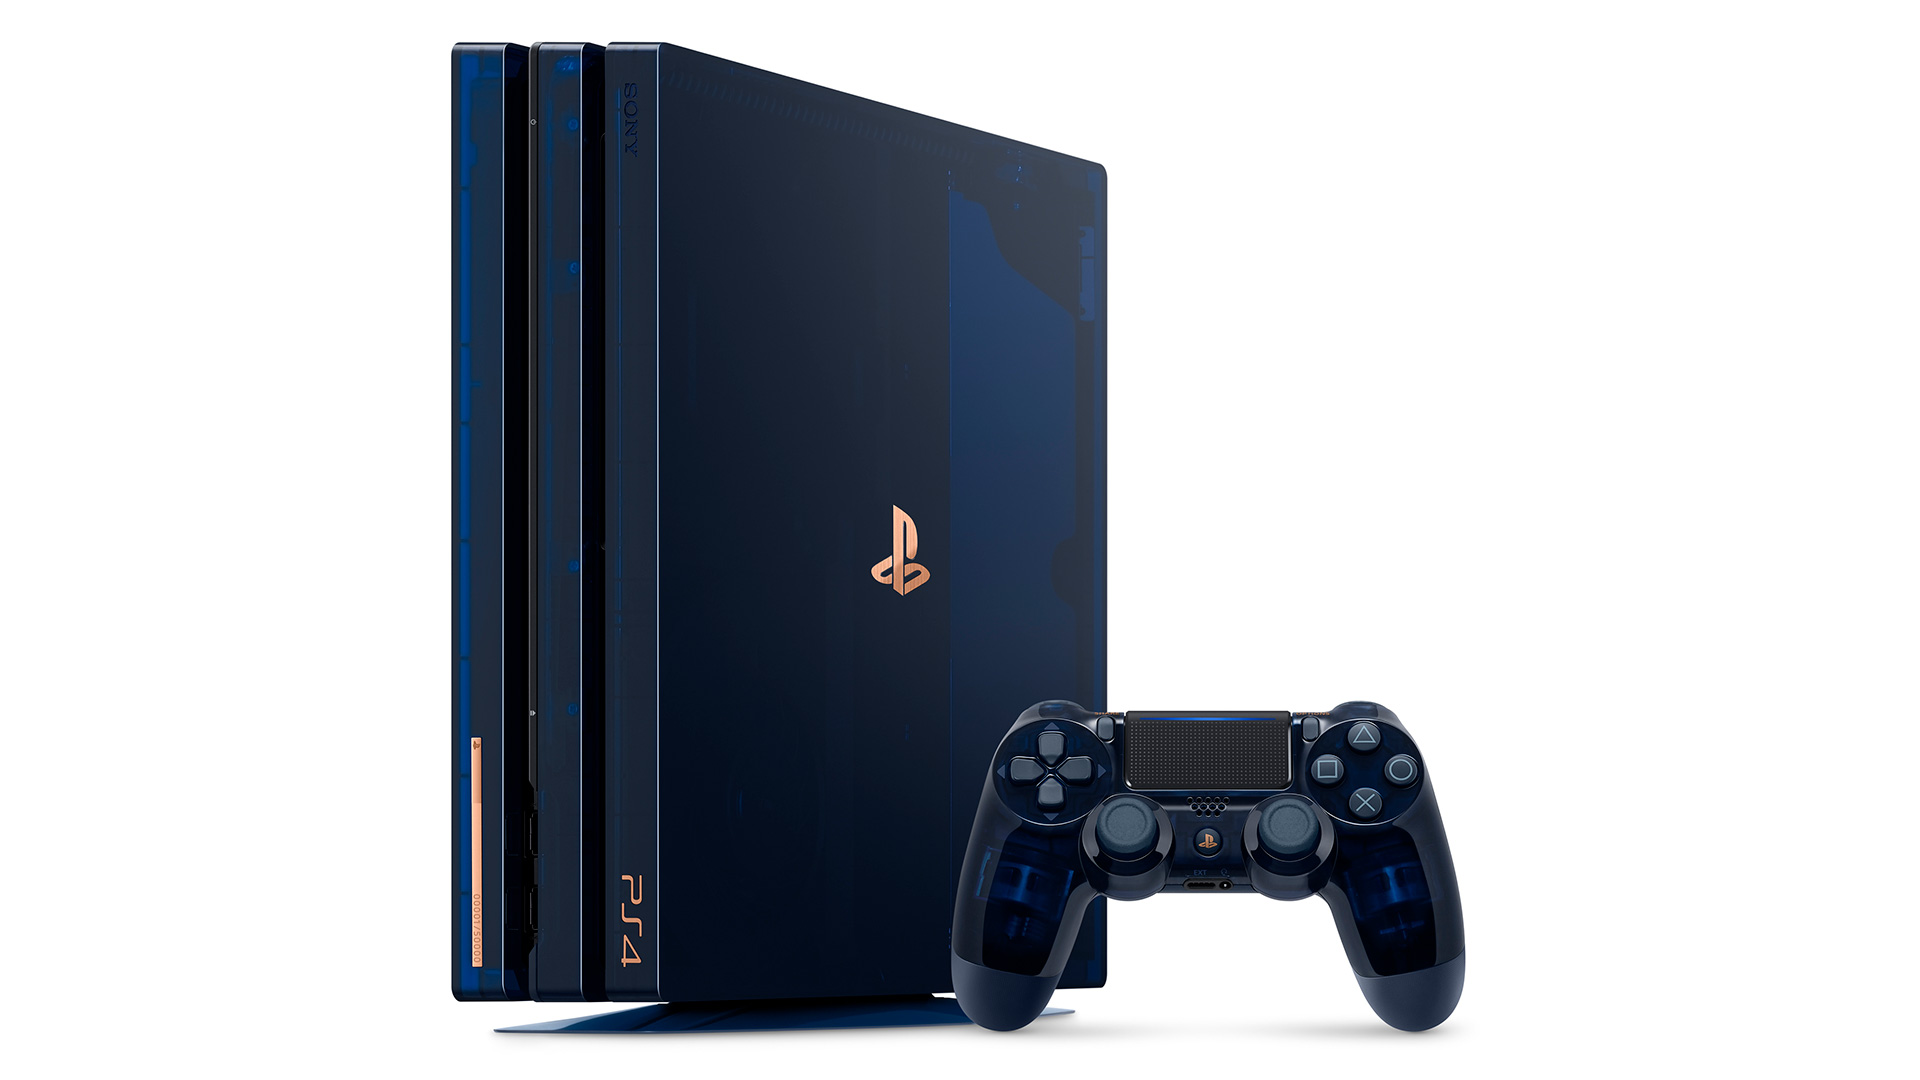 500 Million Limited Edition PS4 Pro - 01